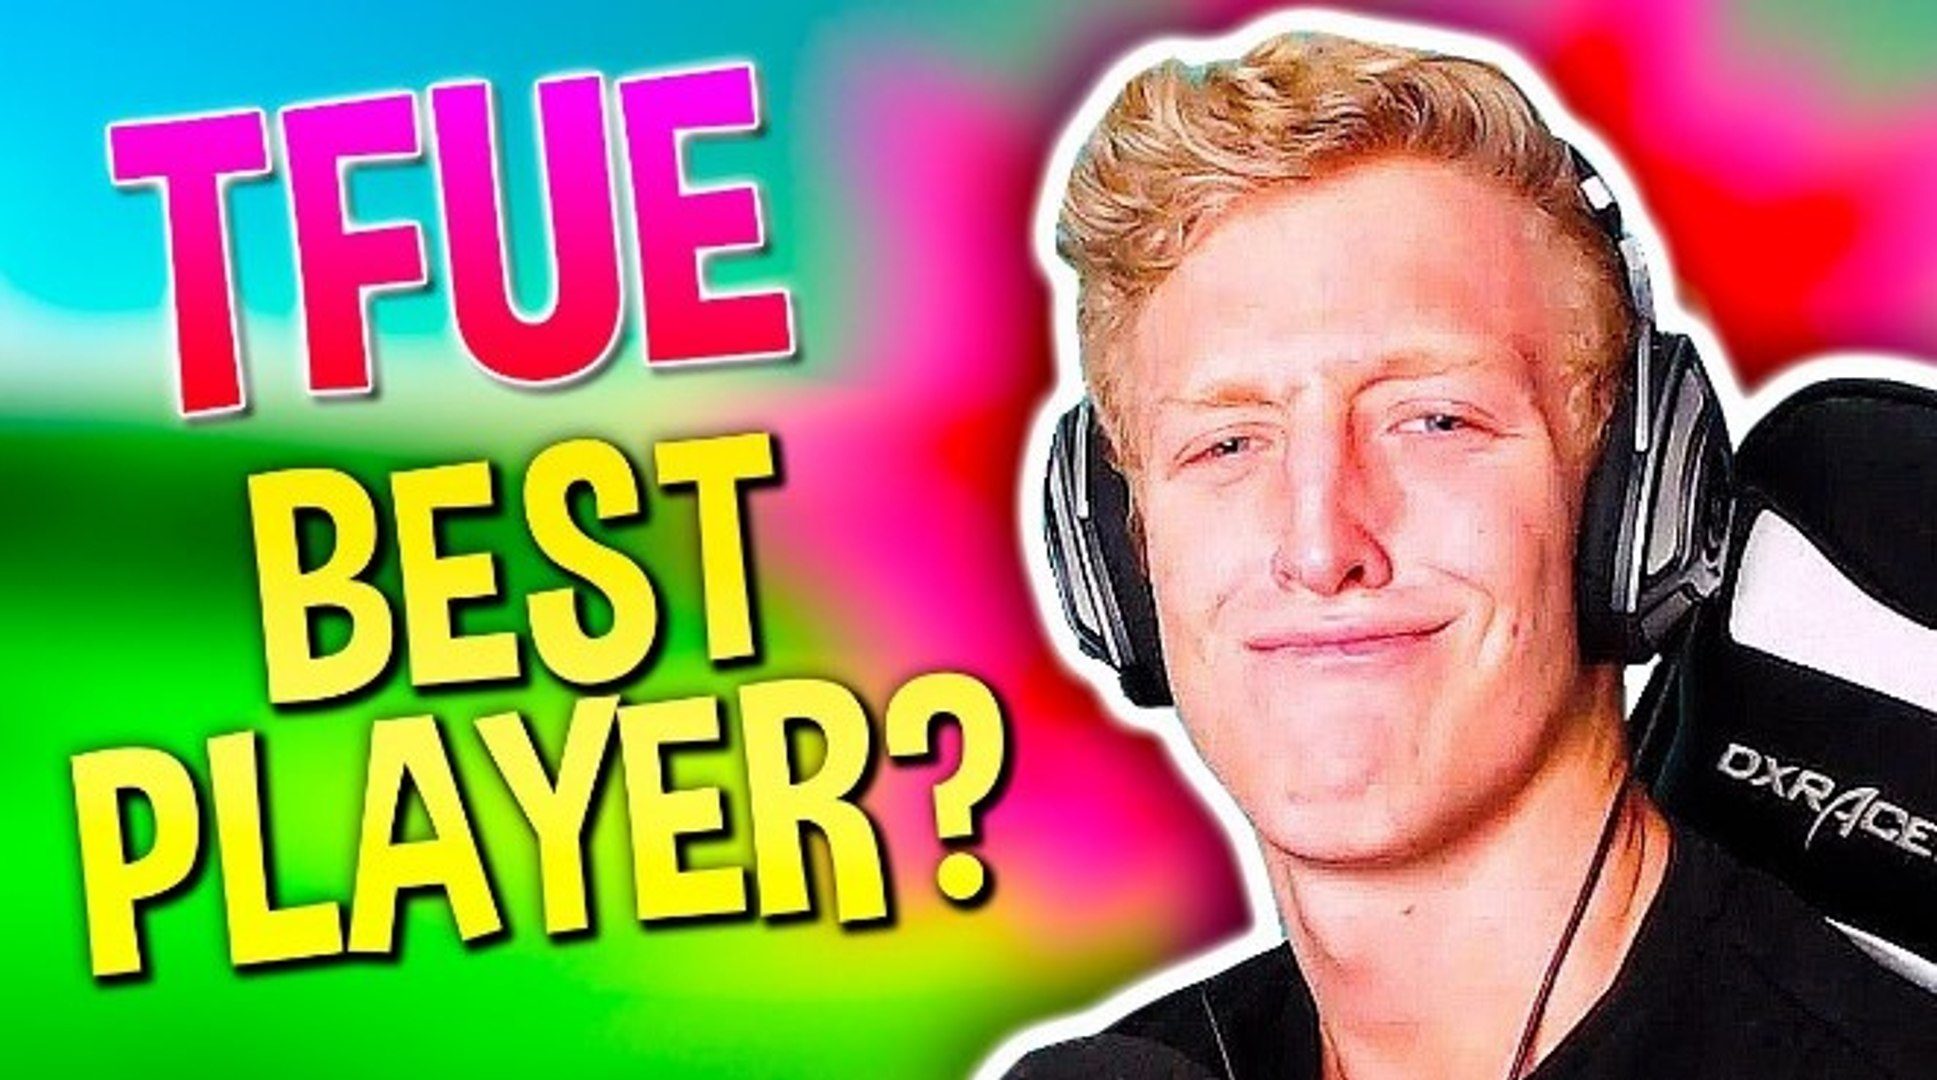 Some of the best Clips in Fortnite & Funny Moments from TFUE